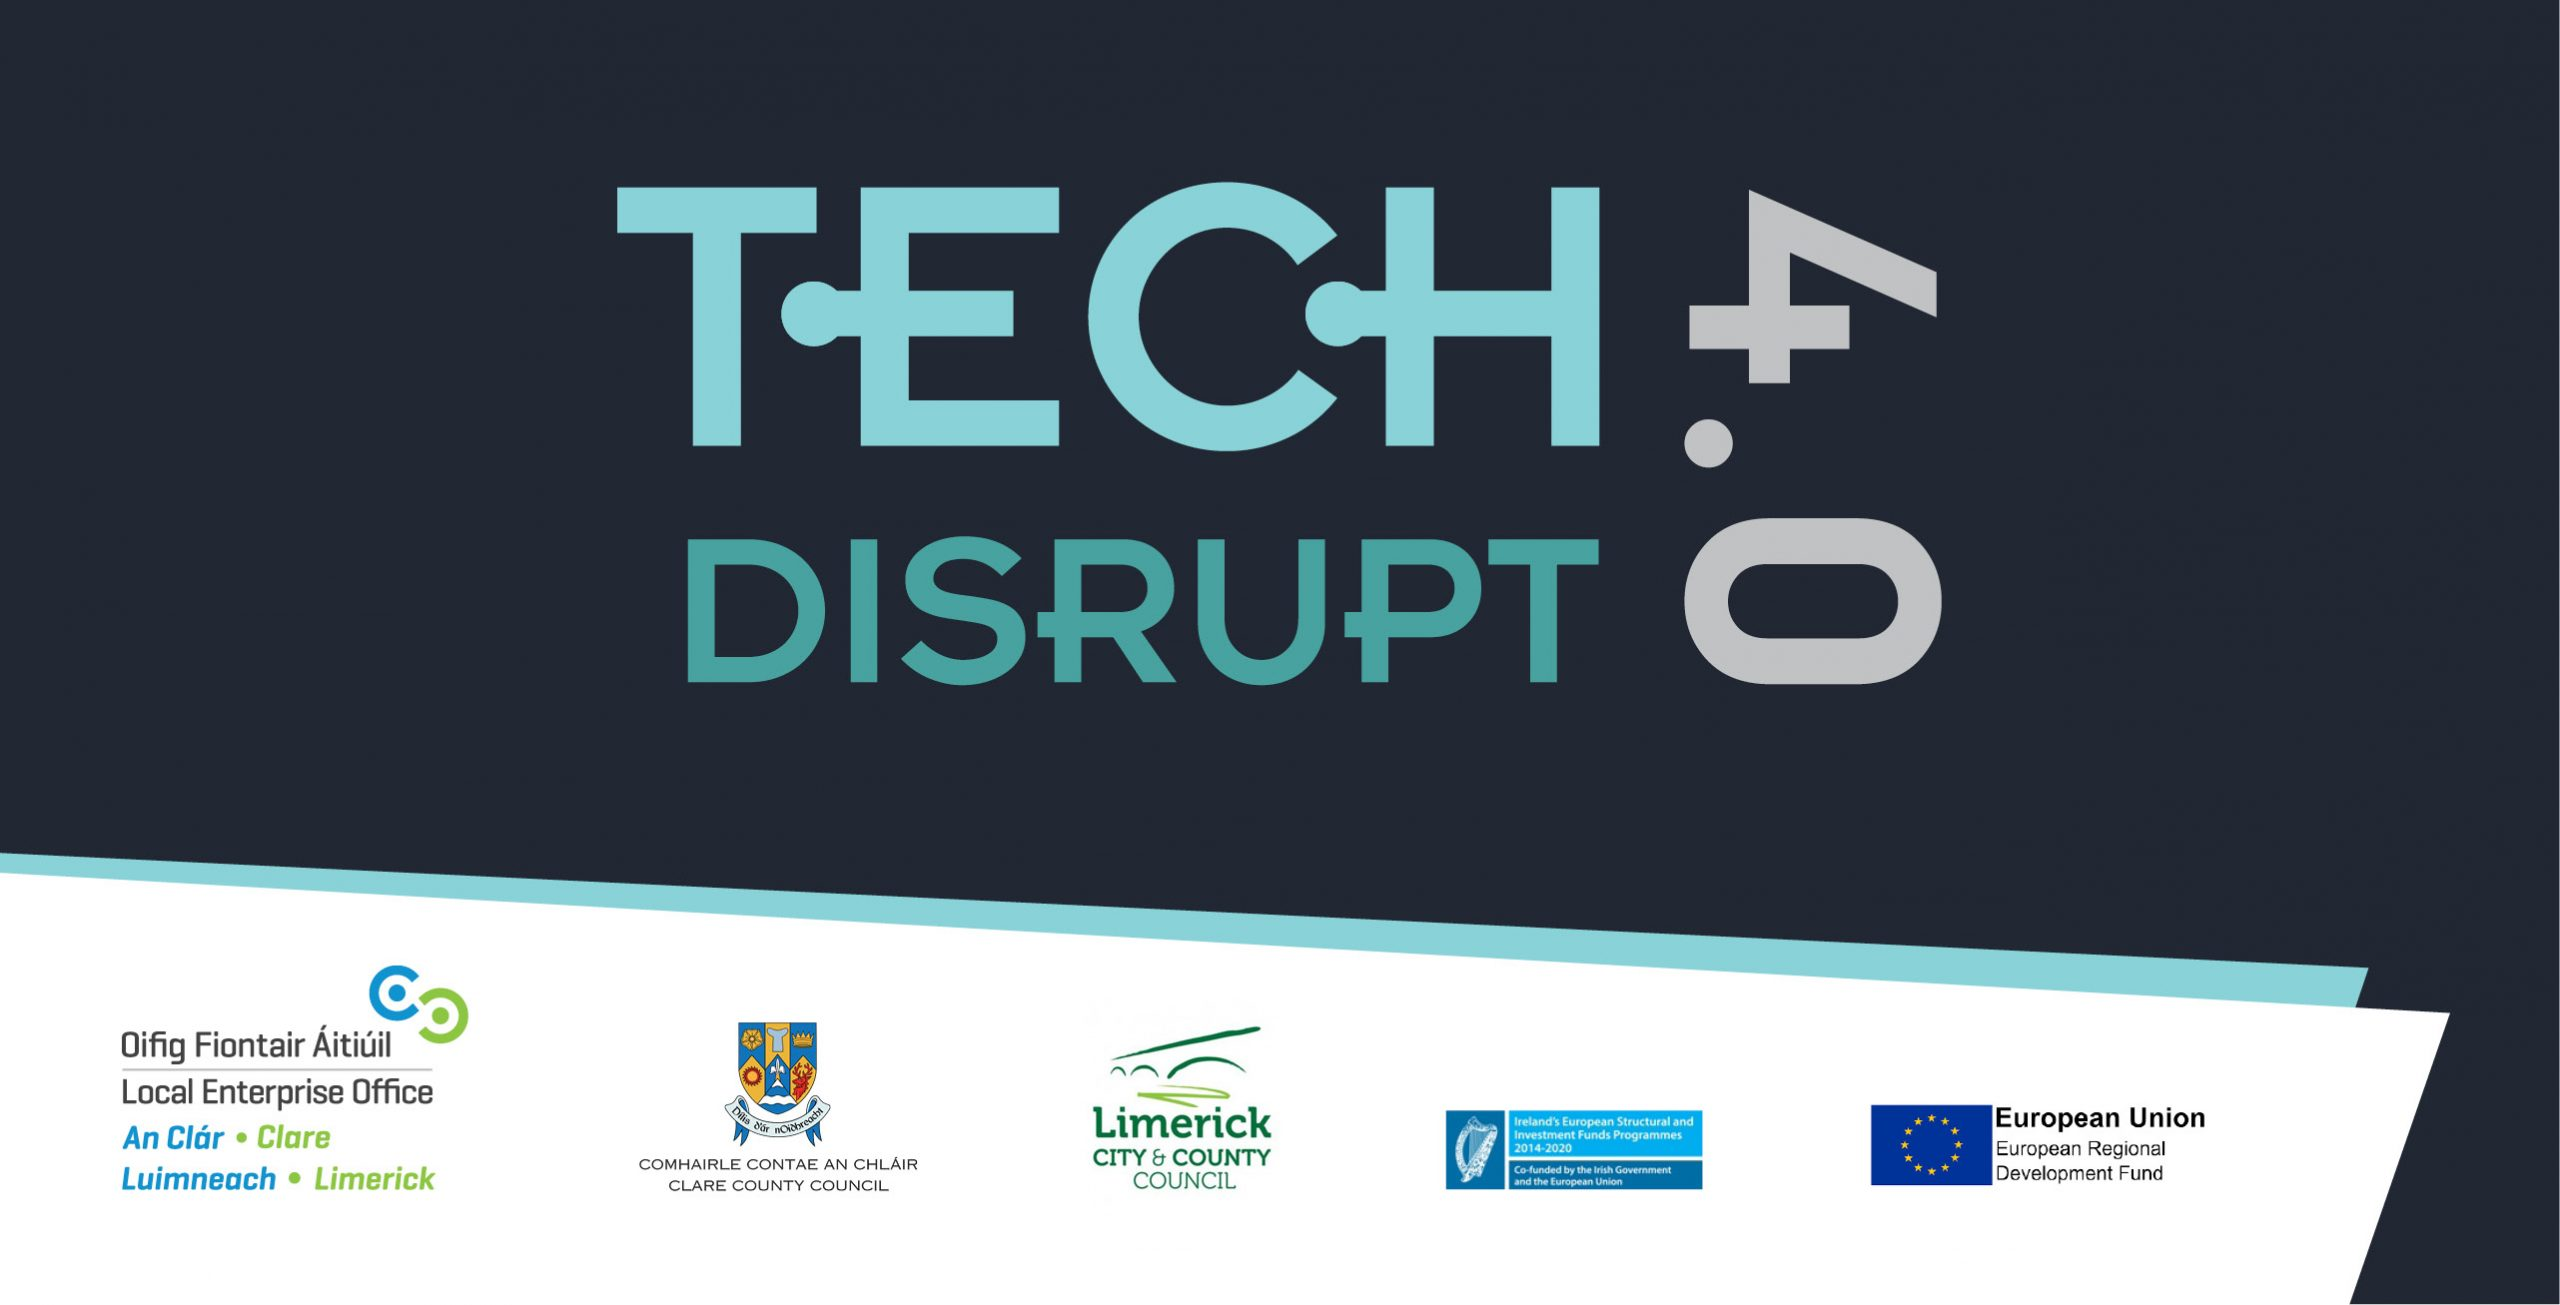 Tech Disrupt 4.0, LEO, Industry 4.0, Local Enterprise Office, €25,000